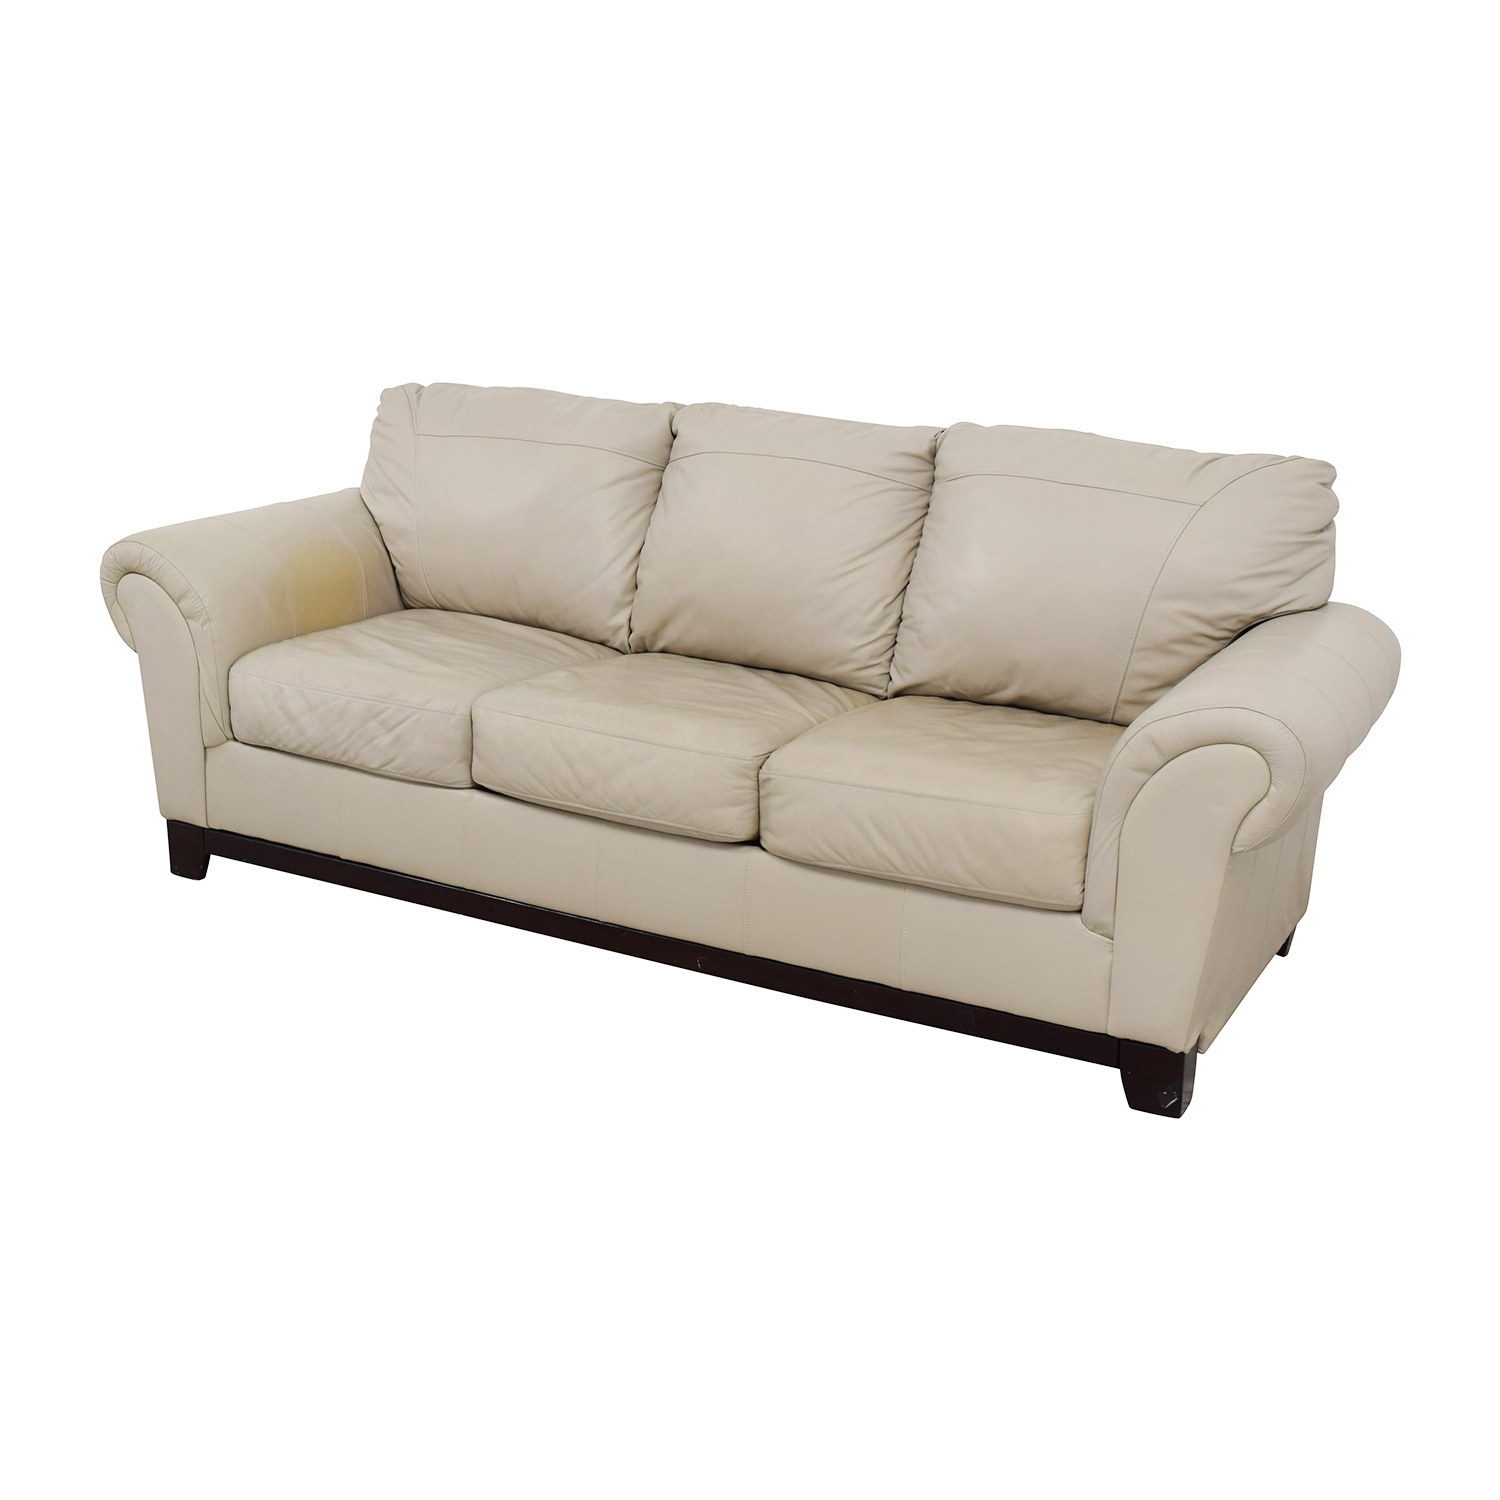 Sofa Taupe Taupe Leather Sofa Taupe Leather Sofas Houzz Thesofa